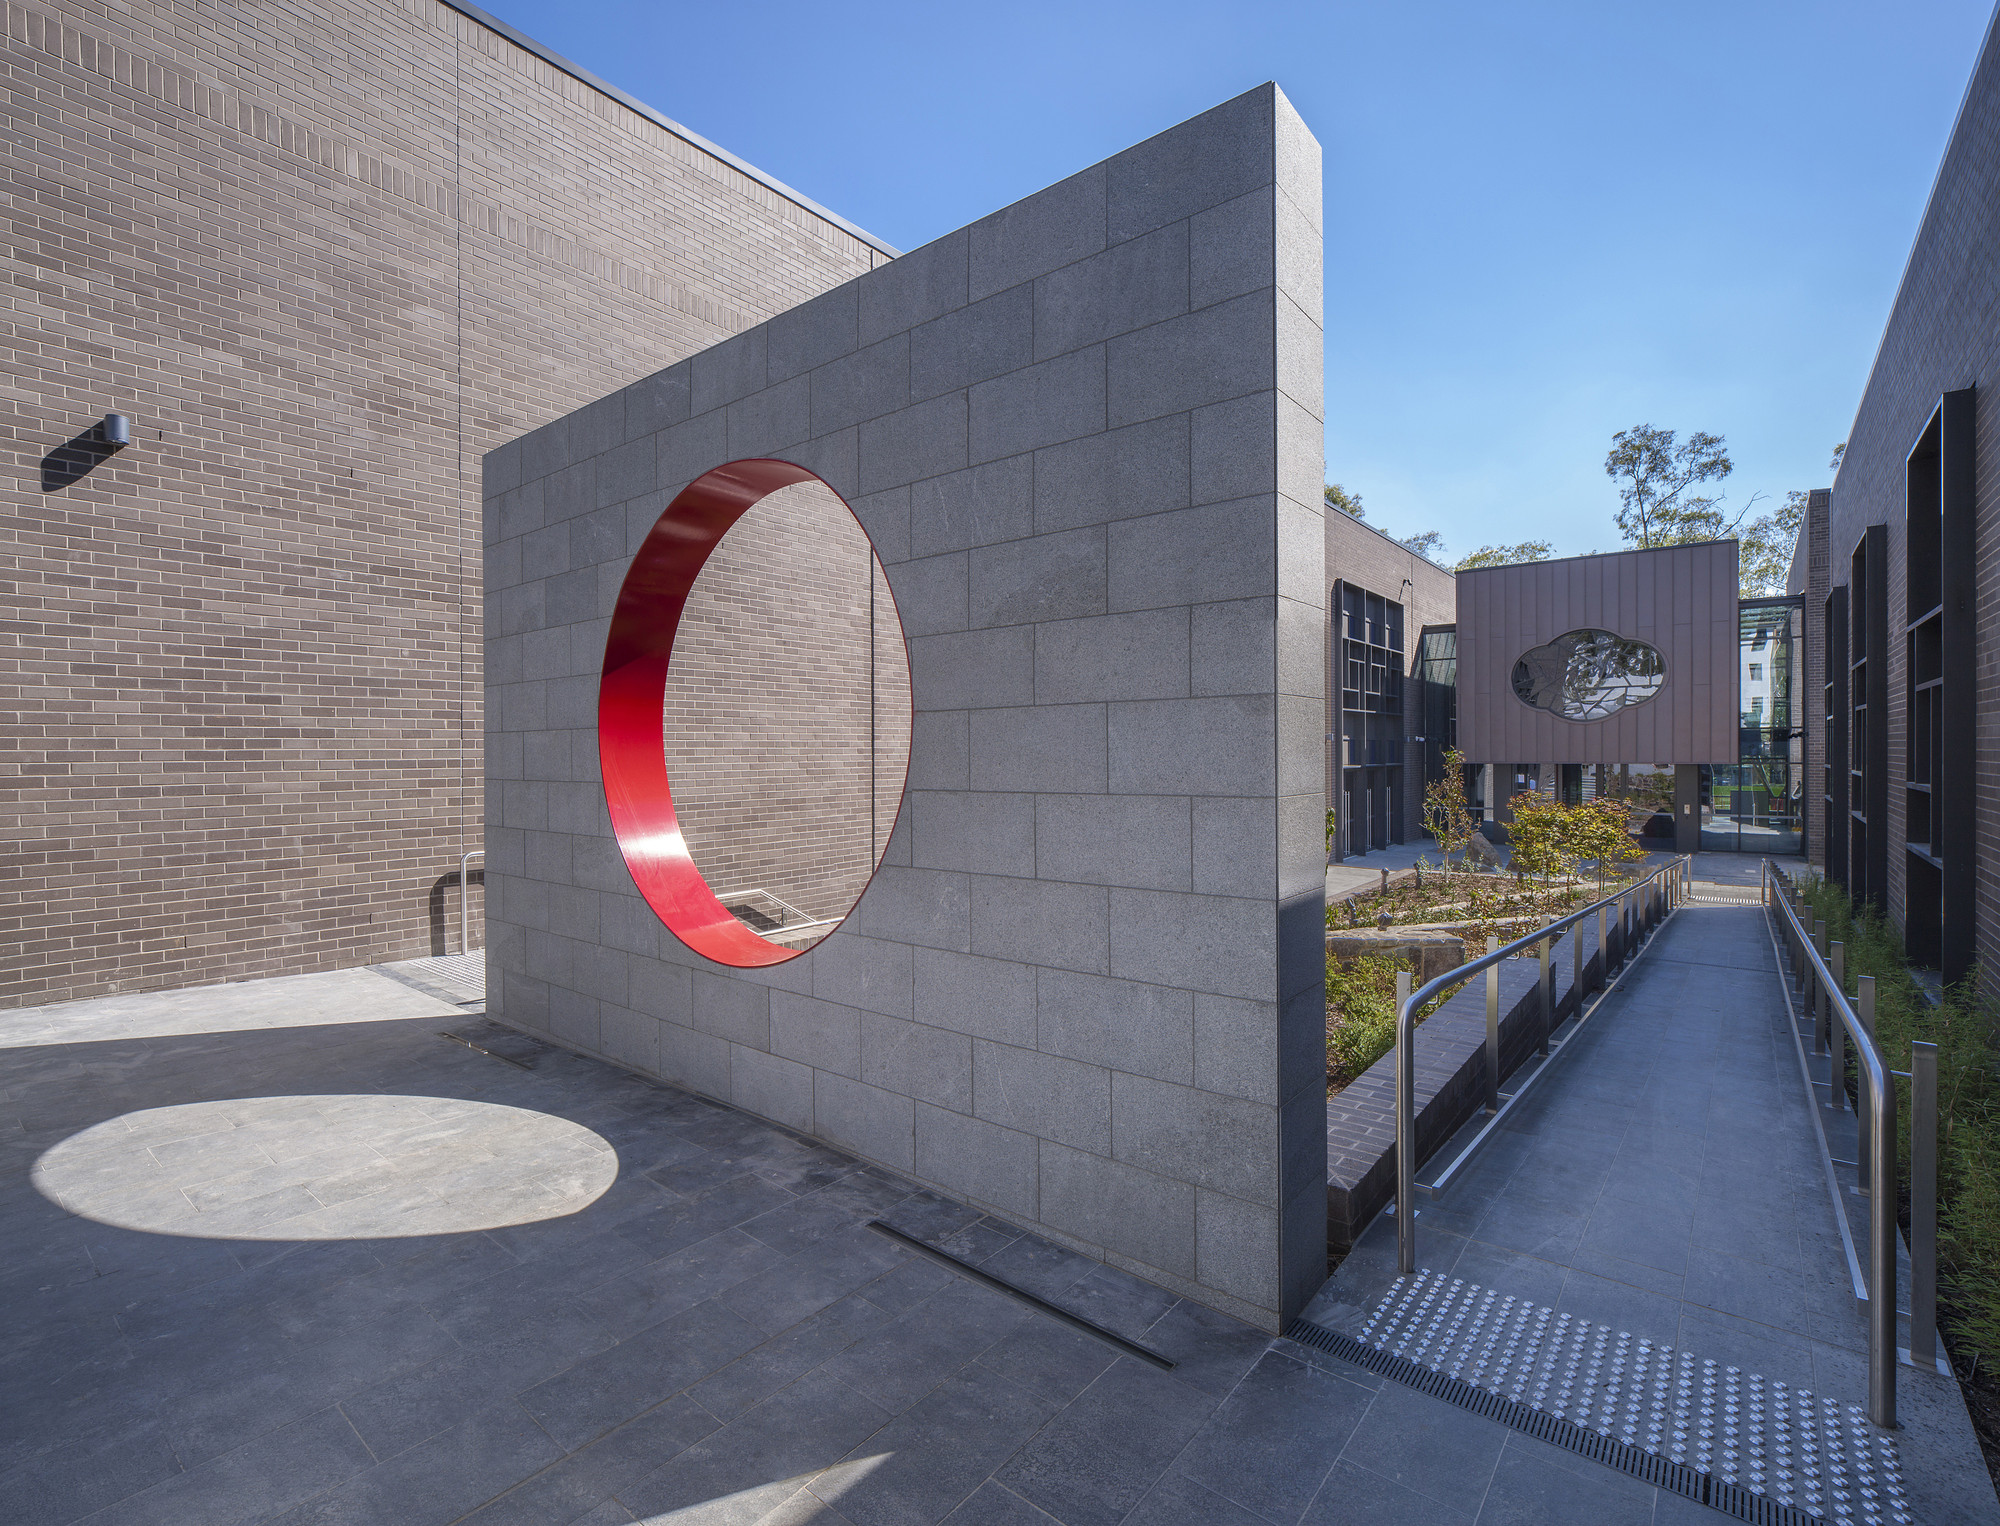 Romaldo Giugola Award for Public Architecture – Australian National University Australian Centre on China in the World by Munns Sly Moore Architects in Association with Mo Atelier Szeto. Image © Ben Wrigley